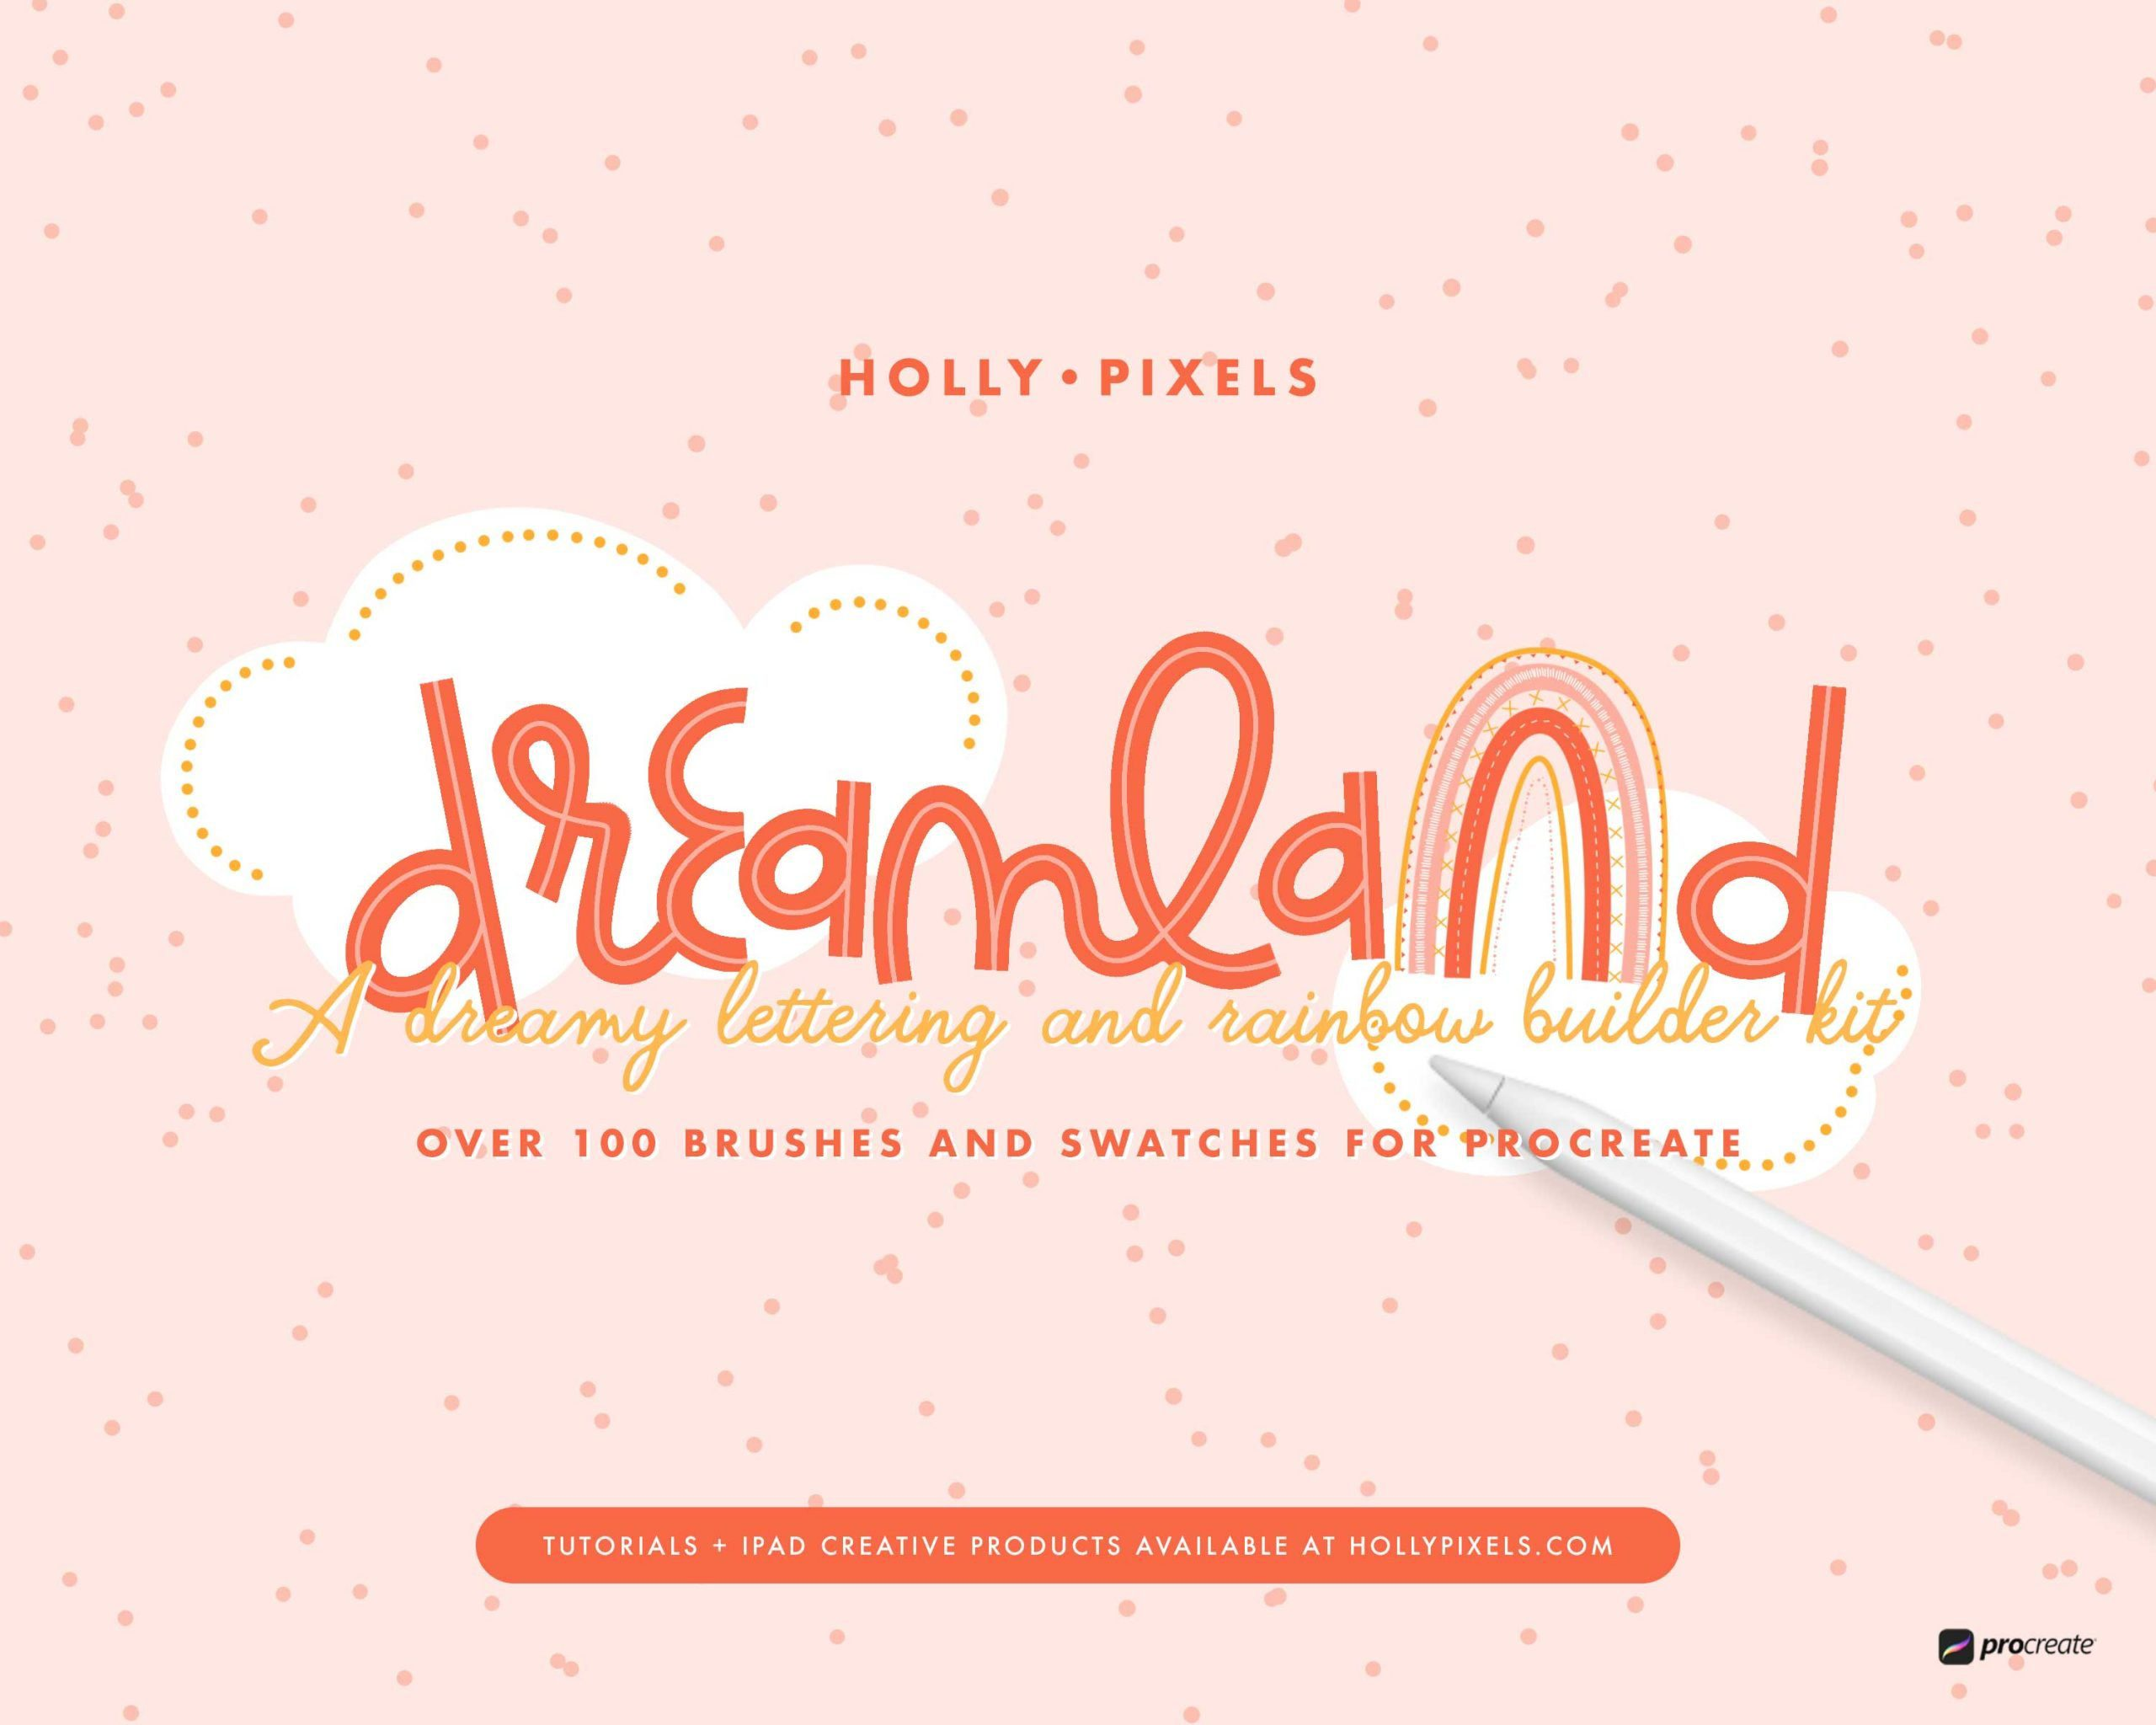 hm-procreate-brushes-dreamland-preview-01